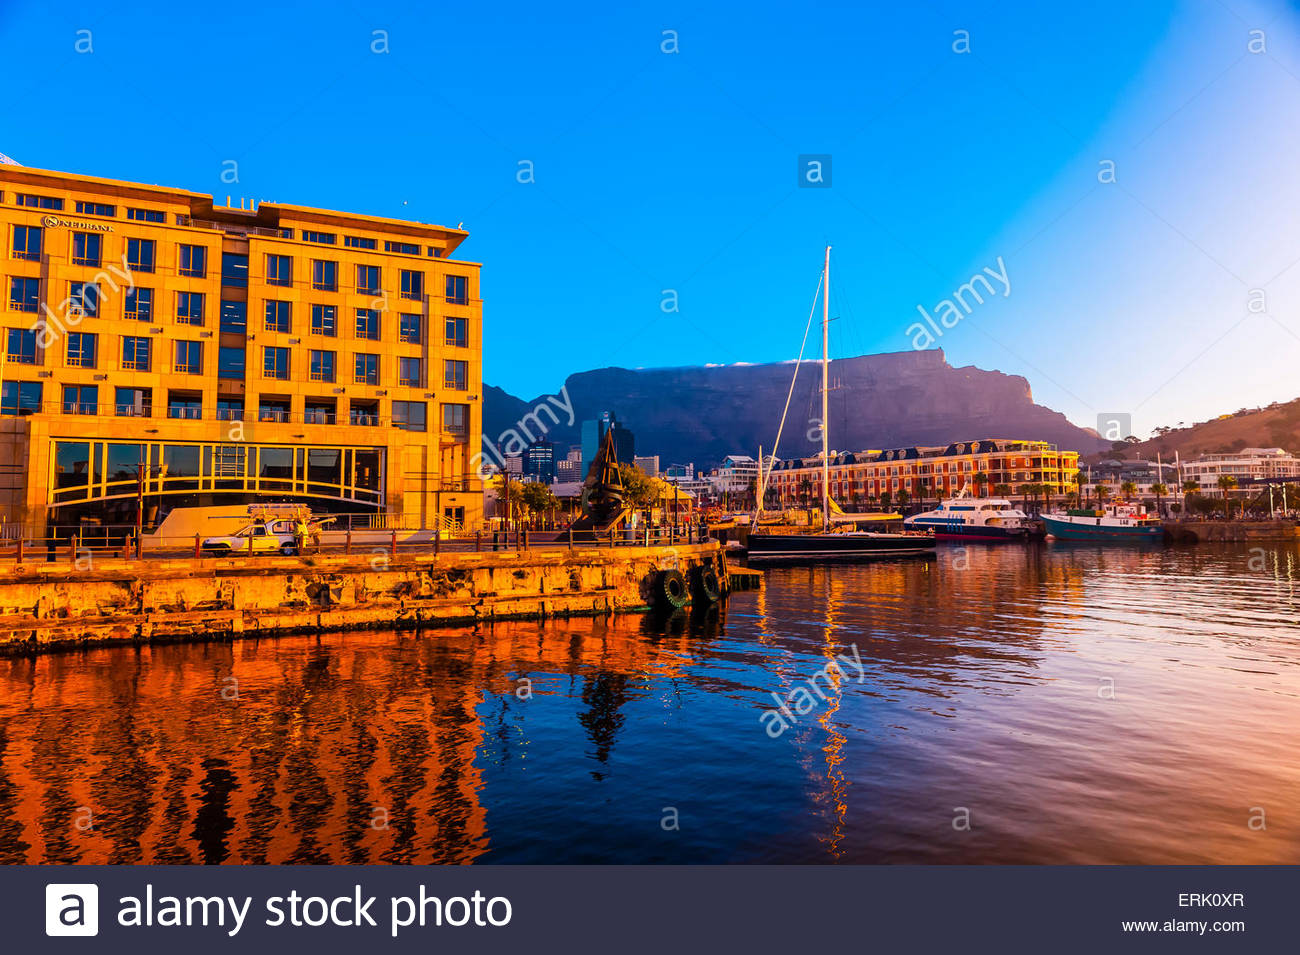 V&A Waterfront with Cape Grace Hotel and Table Mountain behind, Cape Town, South Africa. - Stock Image